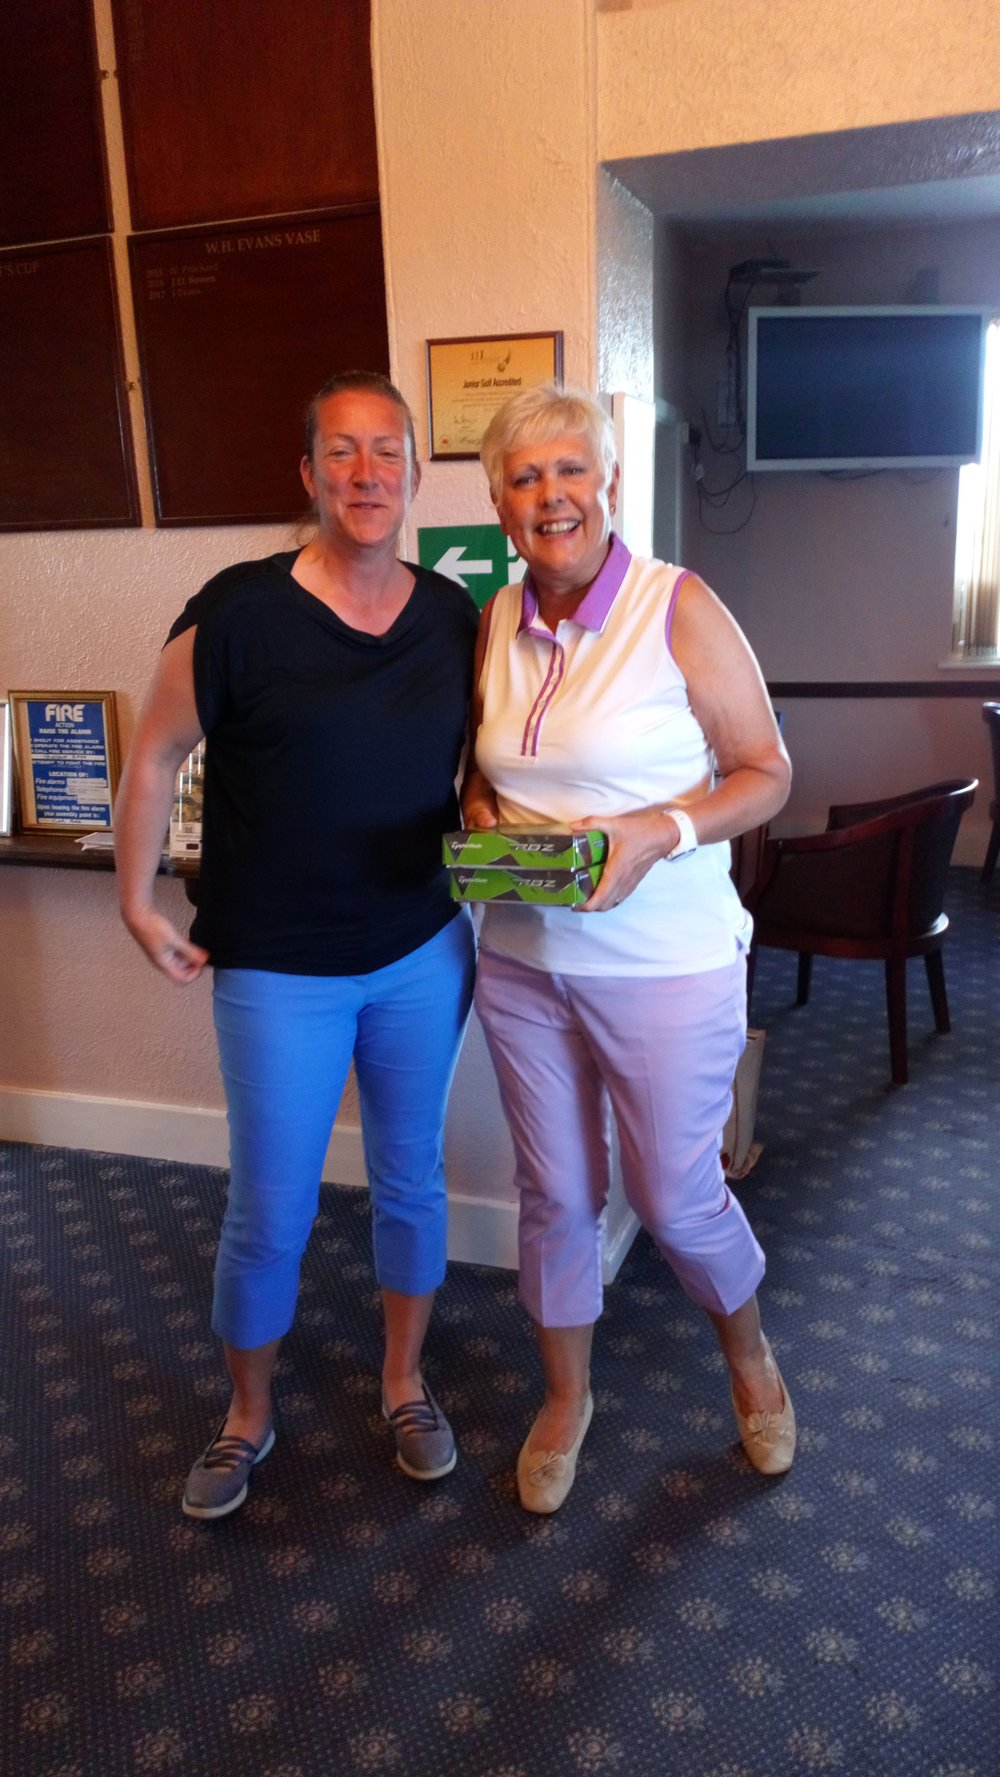 Margaret Bowen of Welshpool with the only 2 of the day! Pictured on the right, with Ellen Jones of Welshpool.